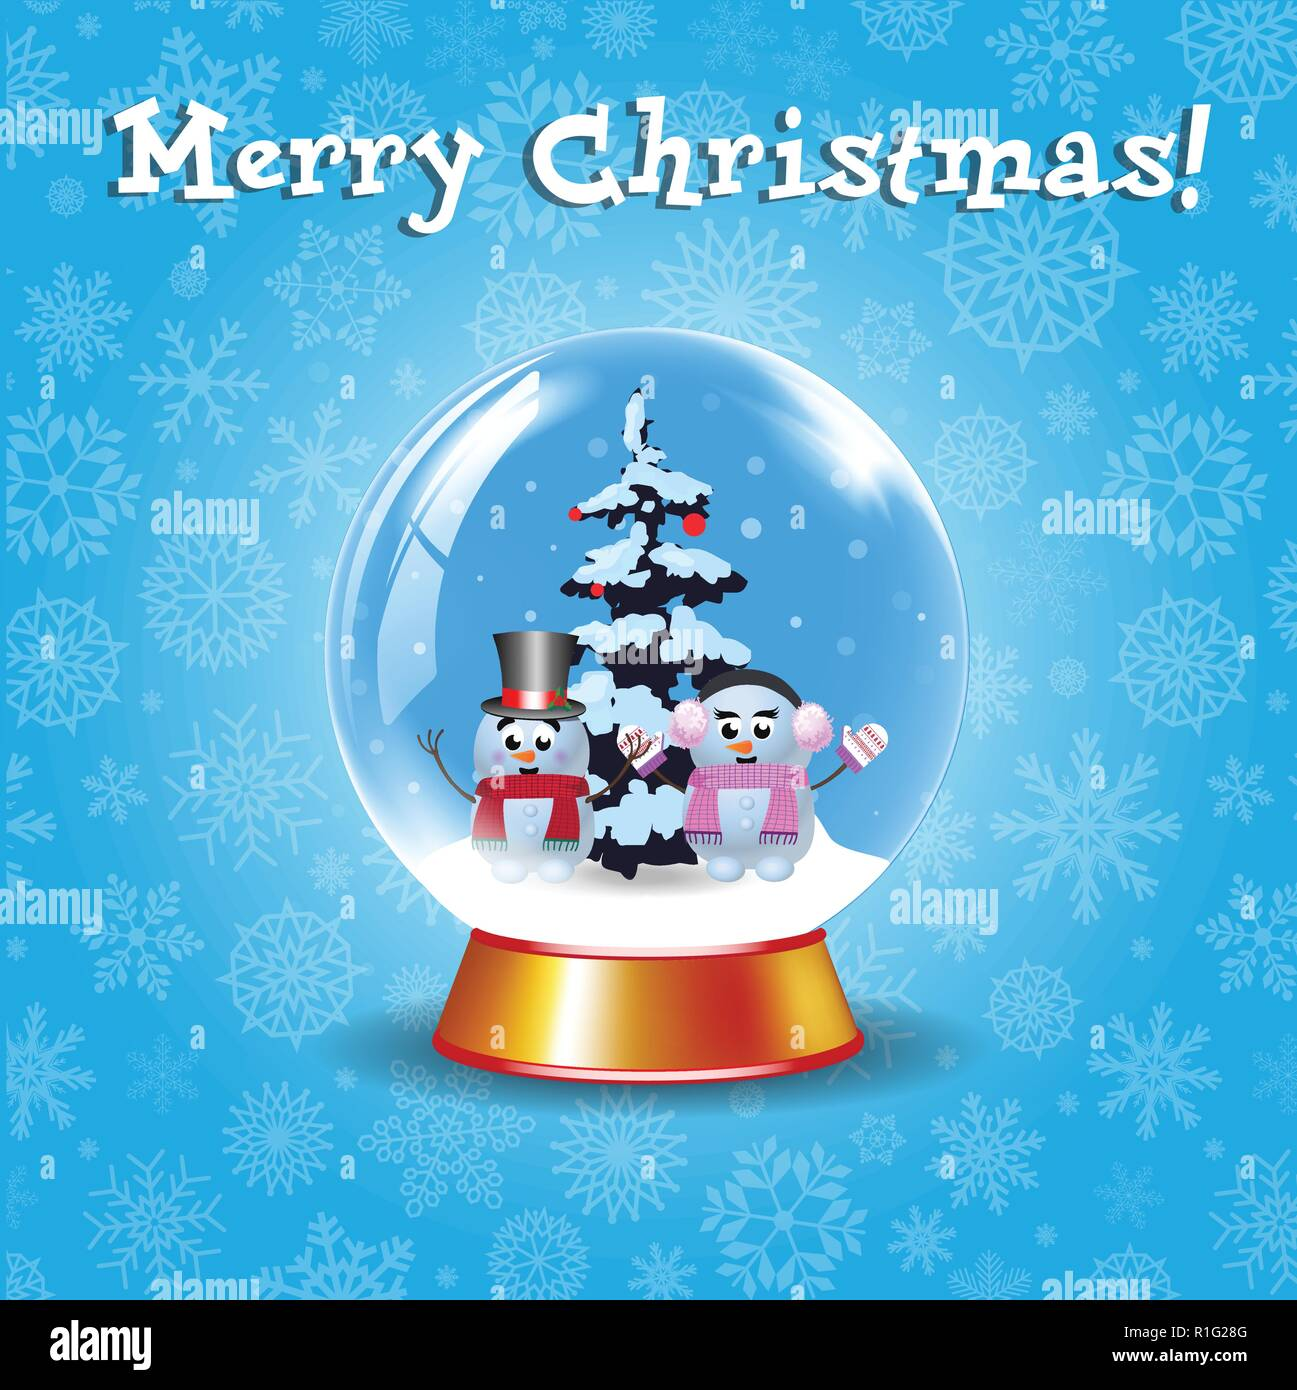 Merry Christmas Greeting Card With Crystal Snow Globe With